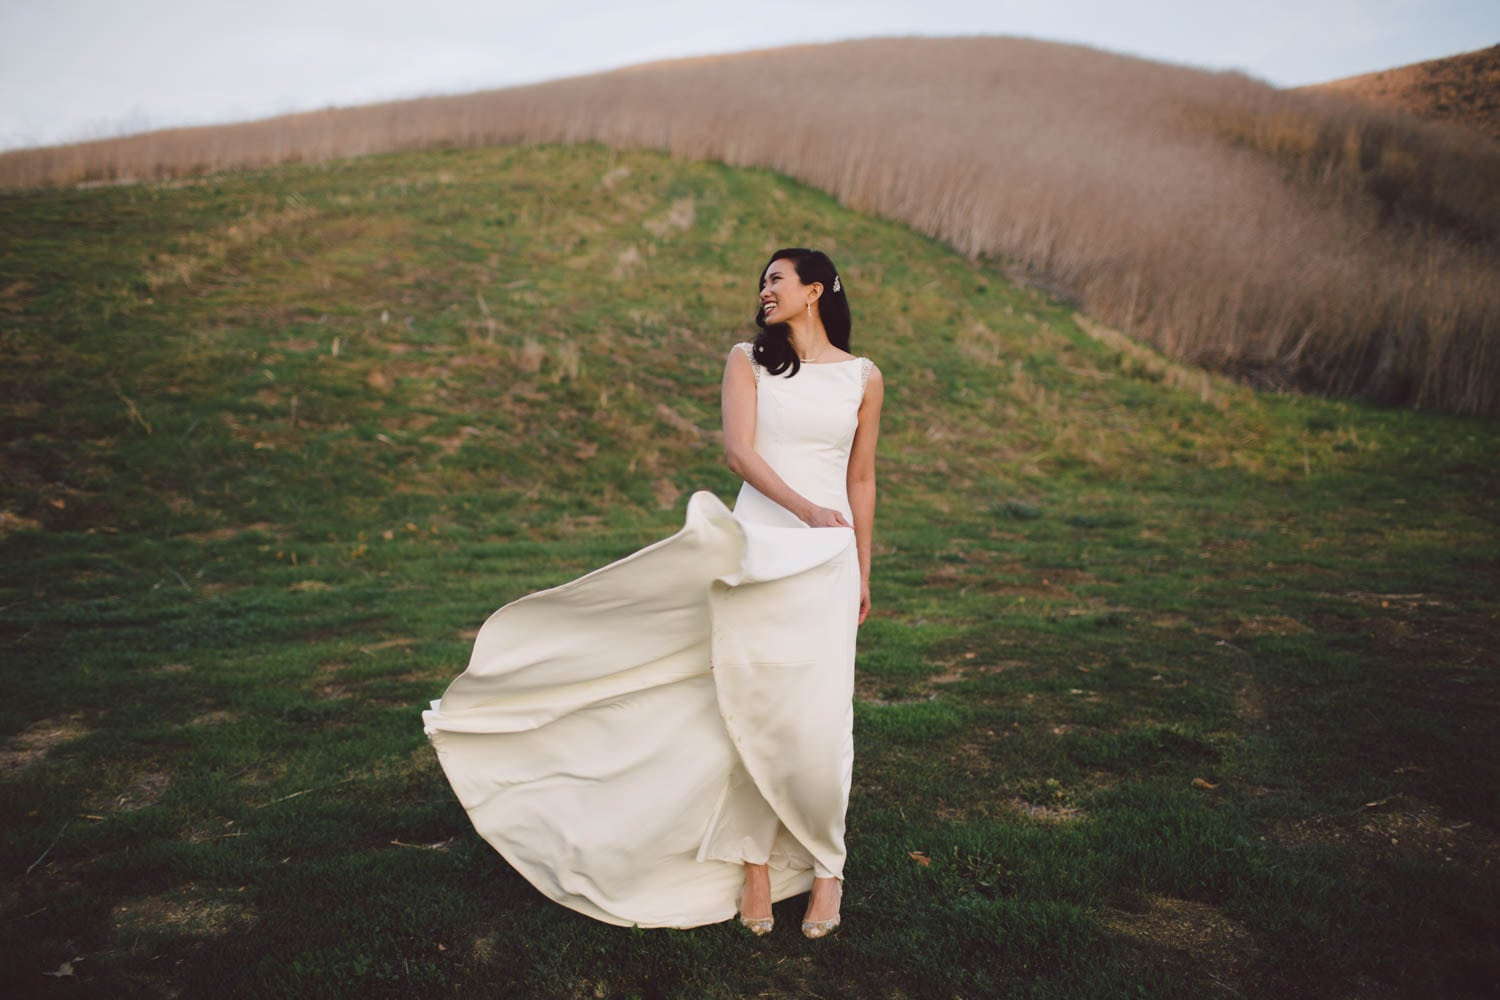 A woman stands on a mountainside in her wedding dress.